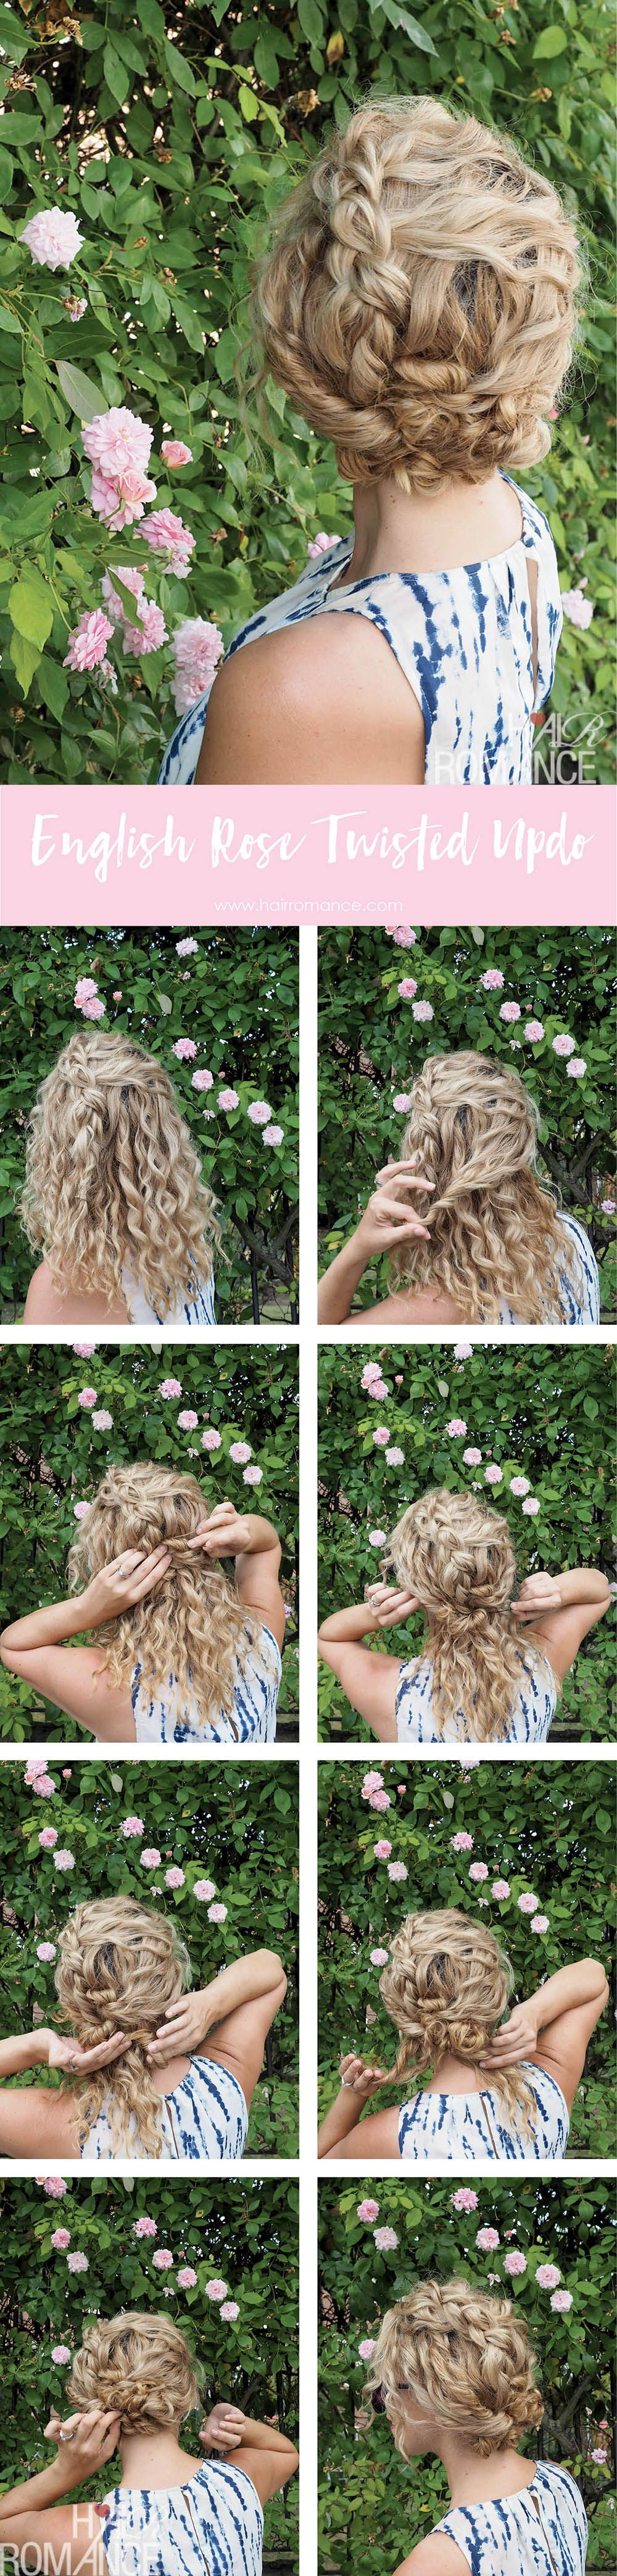 Bohemian braid to romantic updo u notting hill hairstyles curls